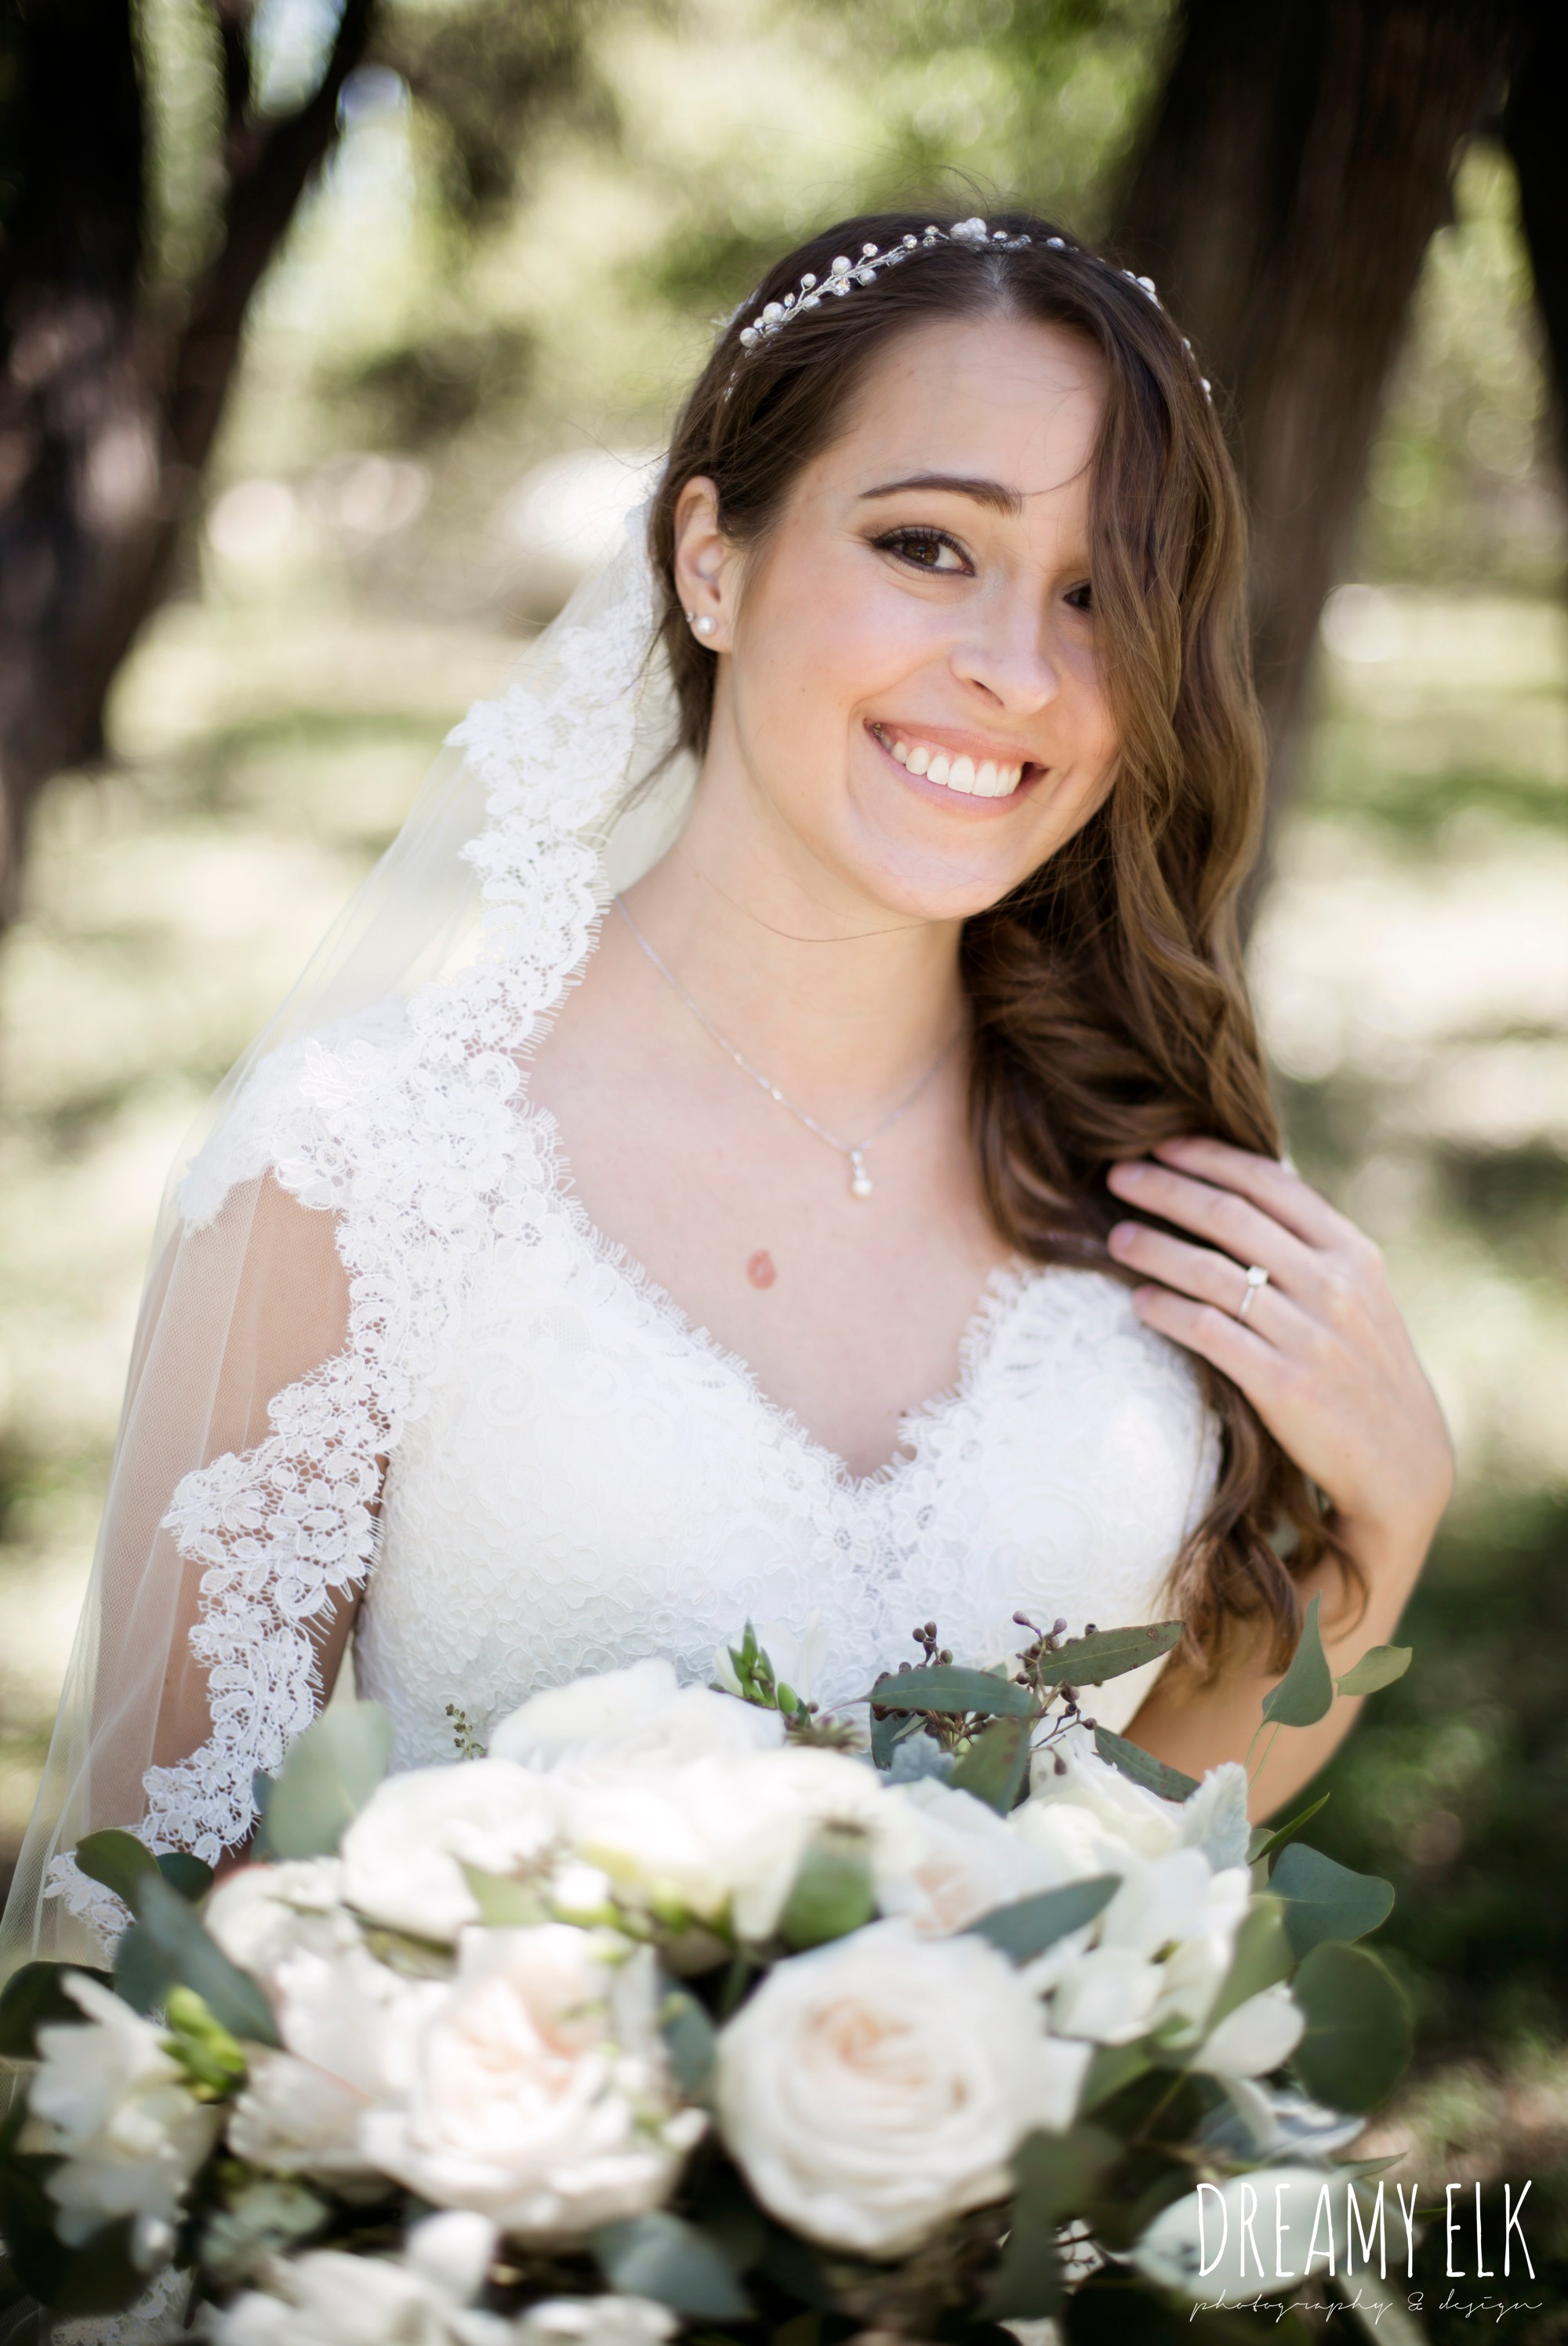 bride, white wedding bouquet, lace trimmed veil, lace wedding dress, outdoor spring april wedding photo, chapel dulcinea ceremony, dripping springs, texas {dreamy elk photography and design}